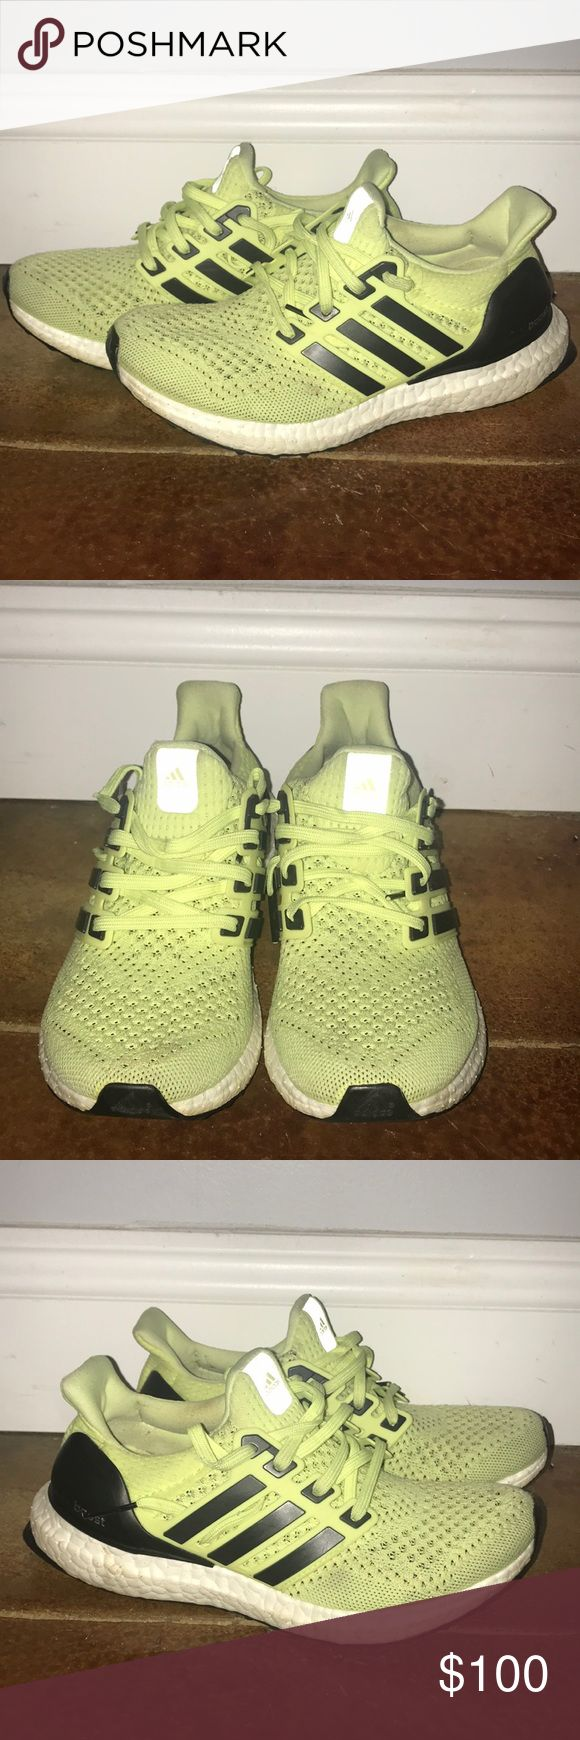 Adidas Ultra Boost Adidas Ultra boost shoe. Gently worn good condition. Few spots that will go away with washing. Size 5.5 adidas Shoes Athletic Shoes